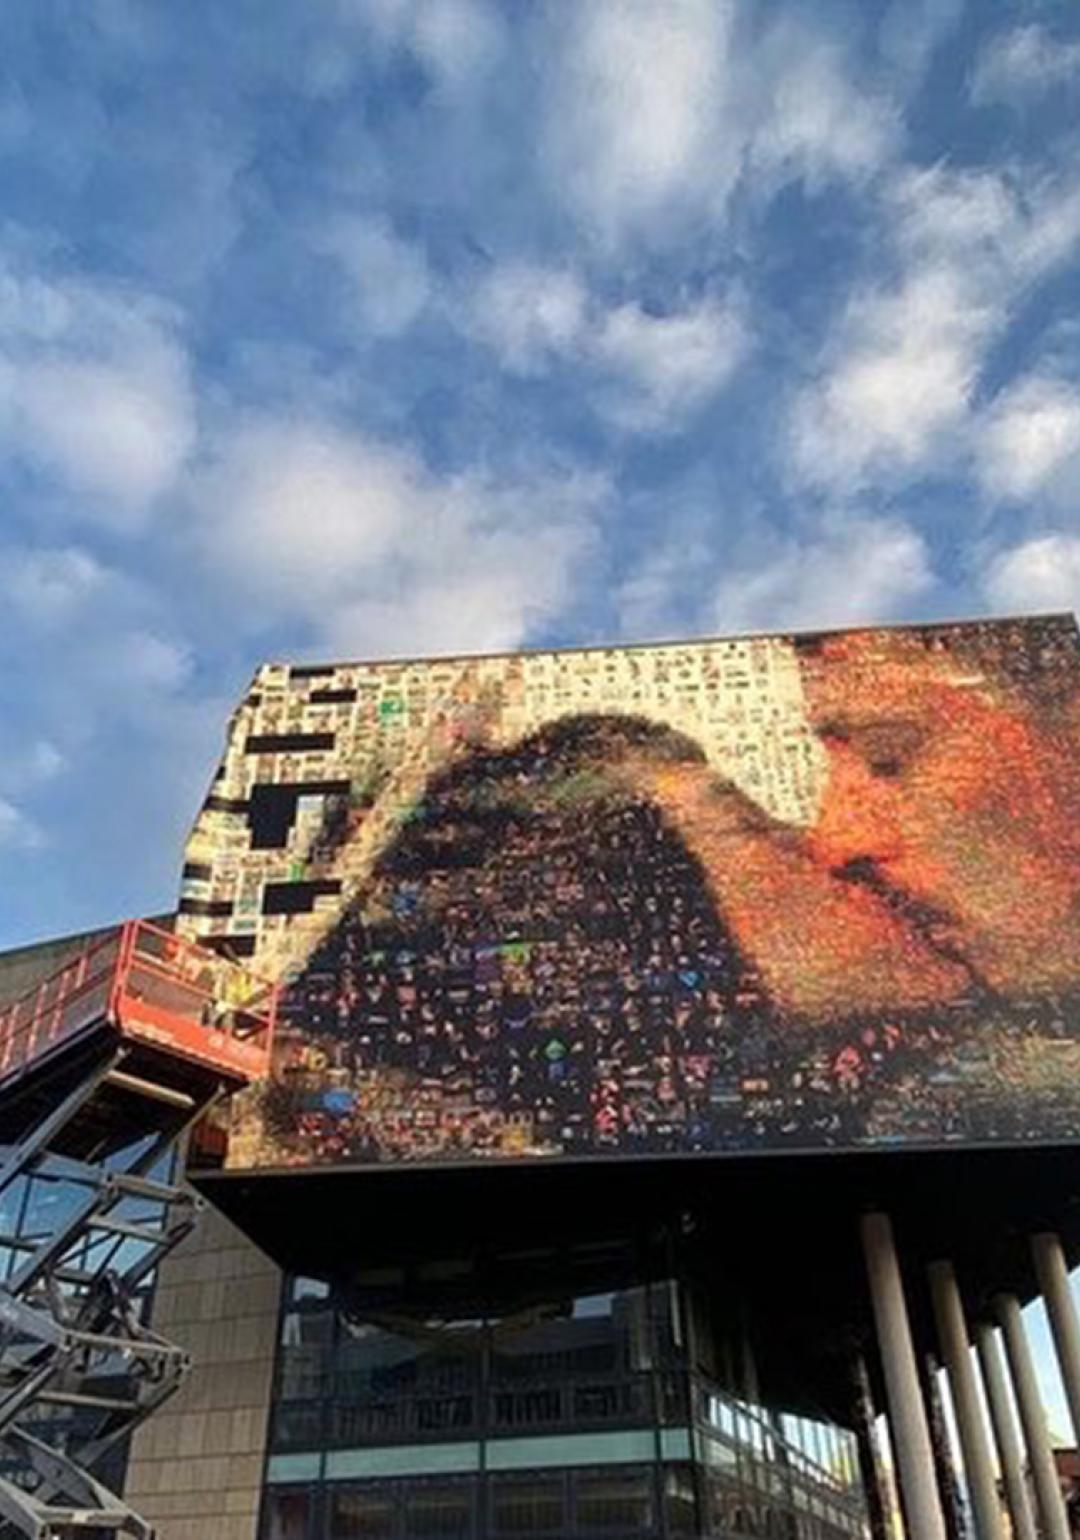 Giant Photo Mosaic Unveiled for FORMAT21 Festival